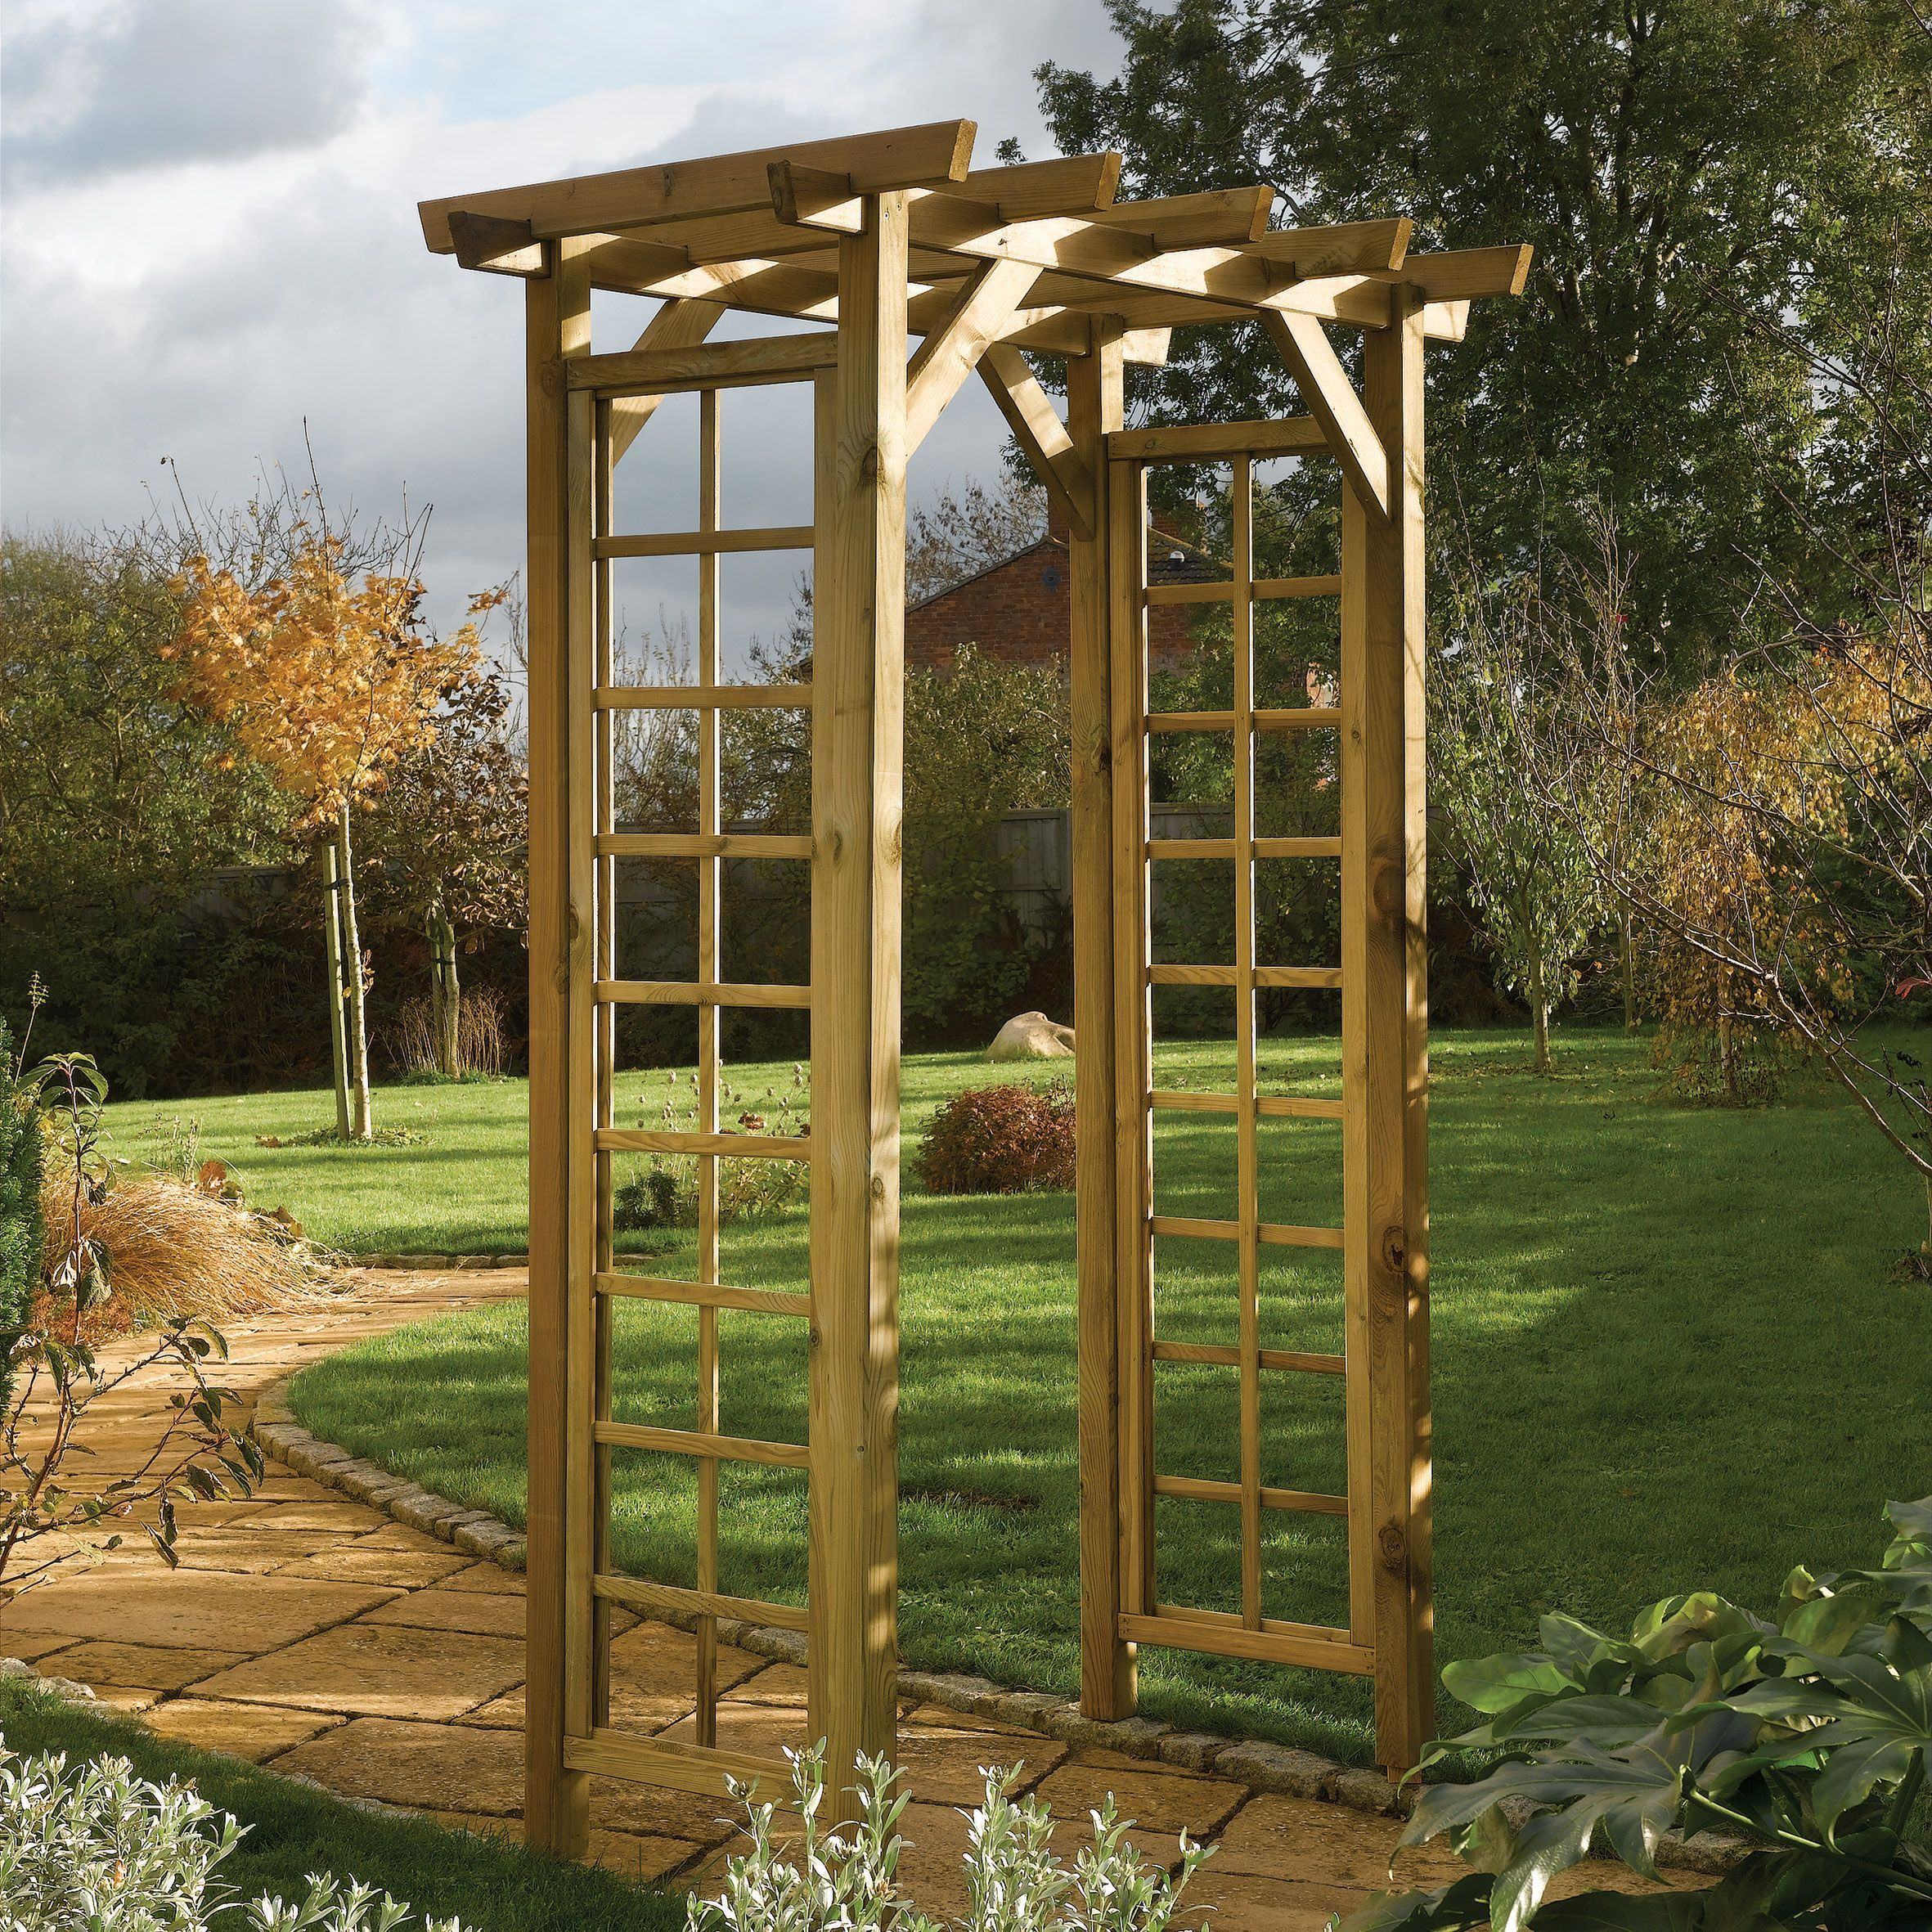 Pergola From B Q Middle Of Garden With Trellis Either Side